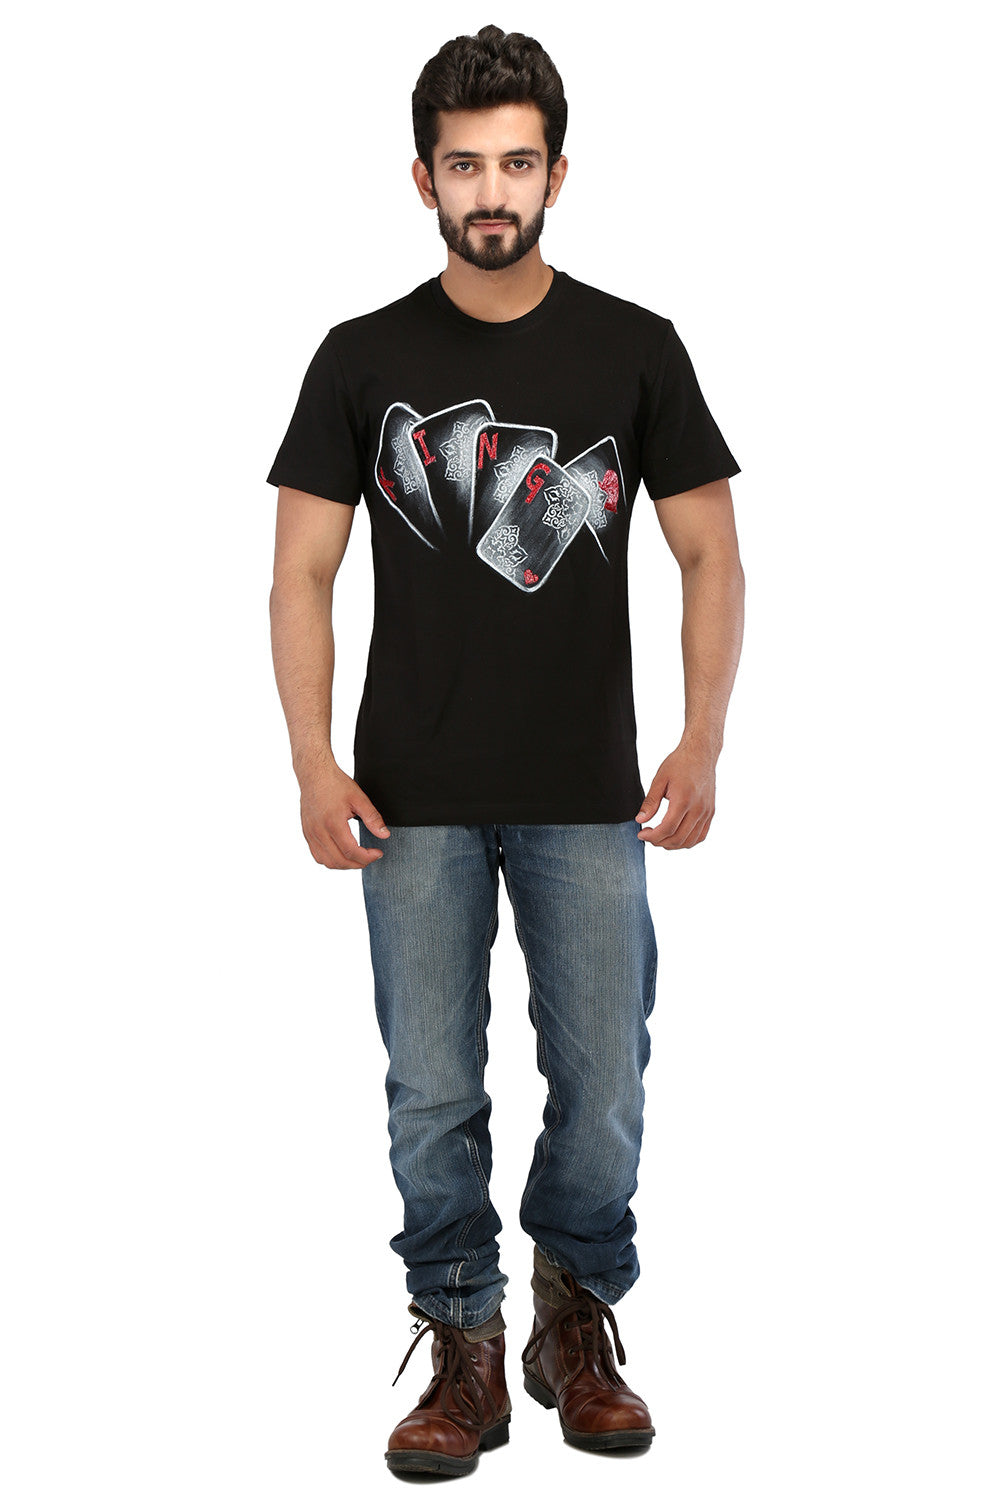 Hand-painted Reigning King Black T-shirt - Rang Rage  - 4